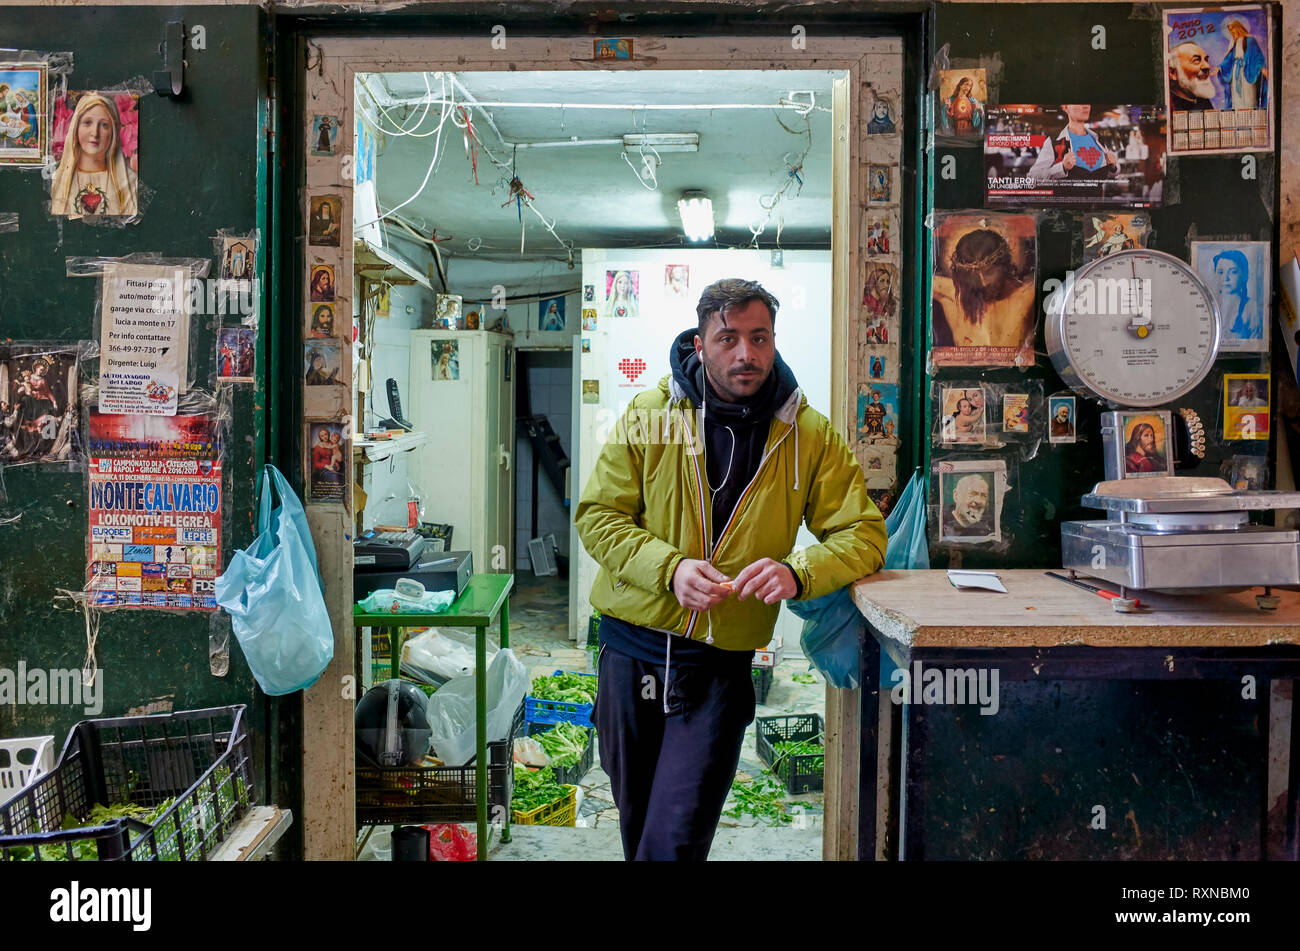 Naples Campania Italy. The greengrocer at Quartieri Spagnoli(Spanish Quarters), a part of the city ofNaplesinItaly. It is a poor area, suffering f - Stock Image